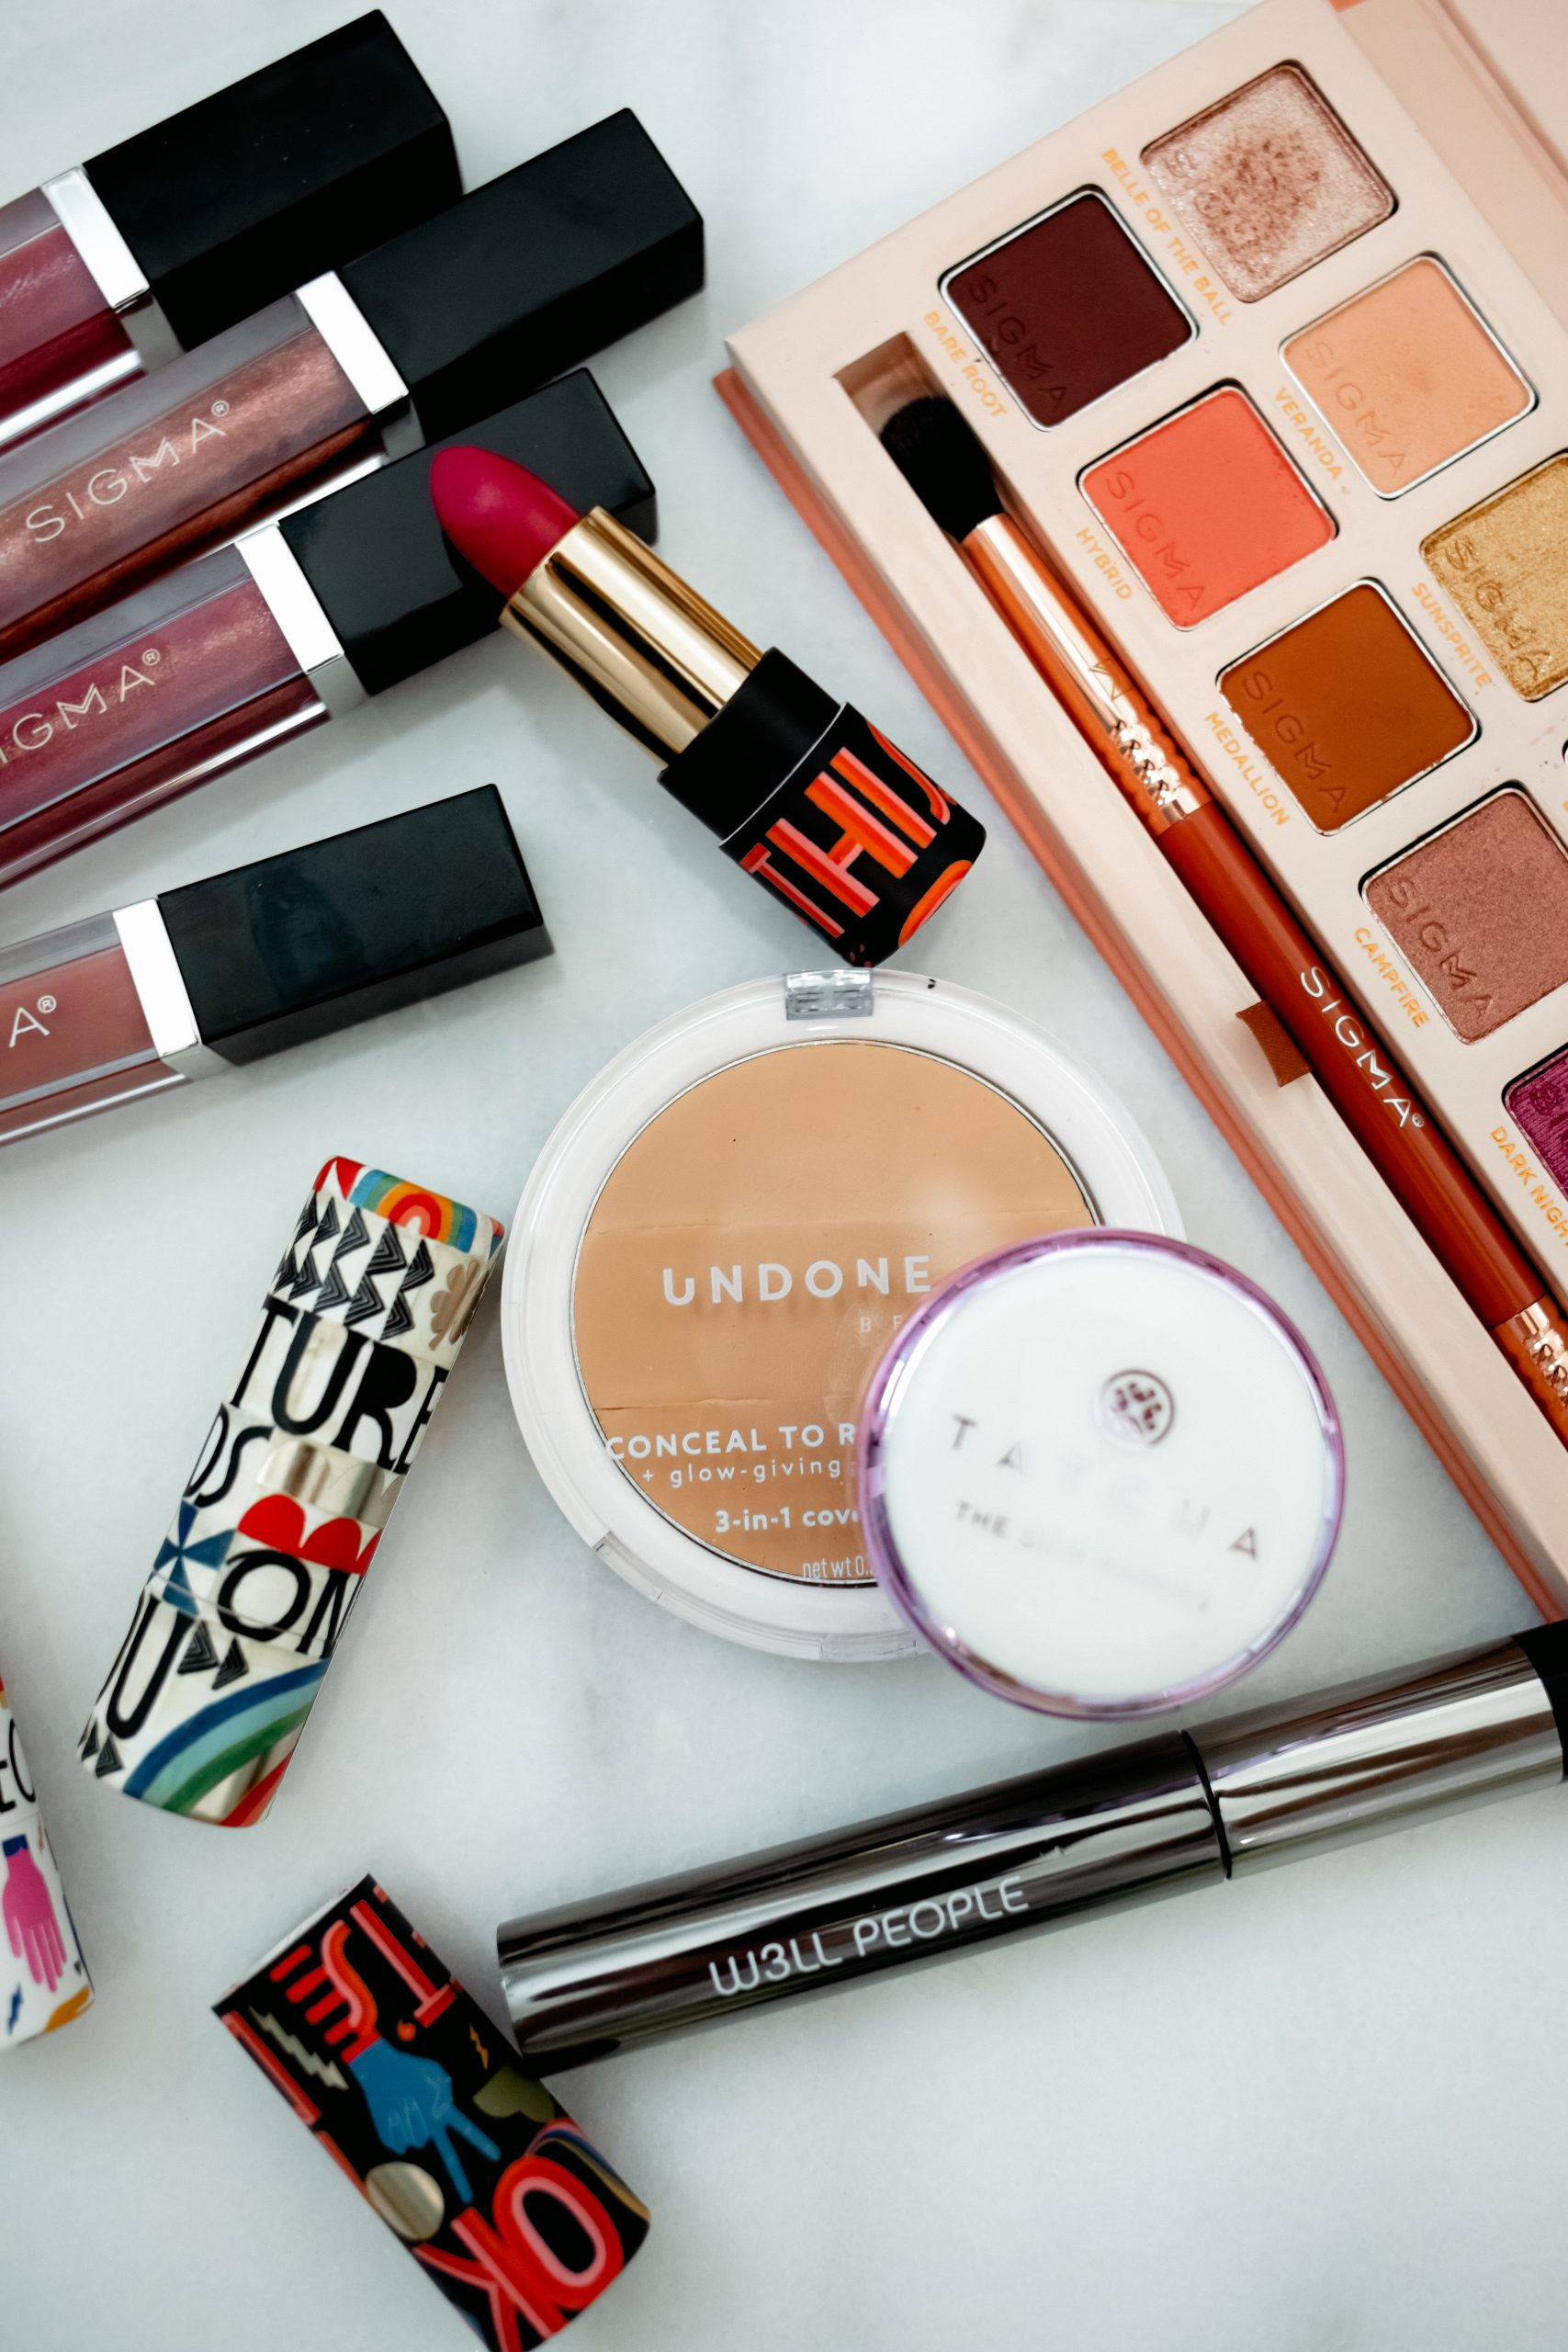 Into Clean Beauty? Houston beauty blogger Elly Brown shares her favorite Clean Makeup Brands and Products along with a quick tutorial!